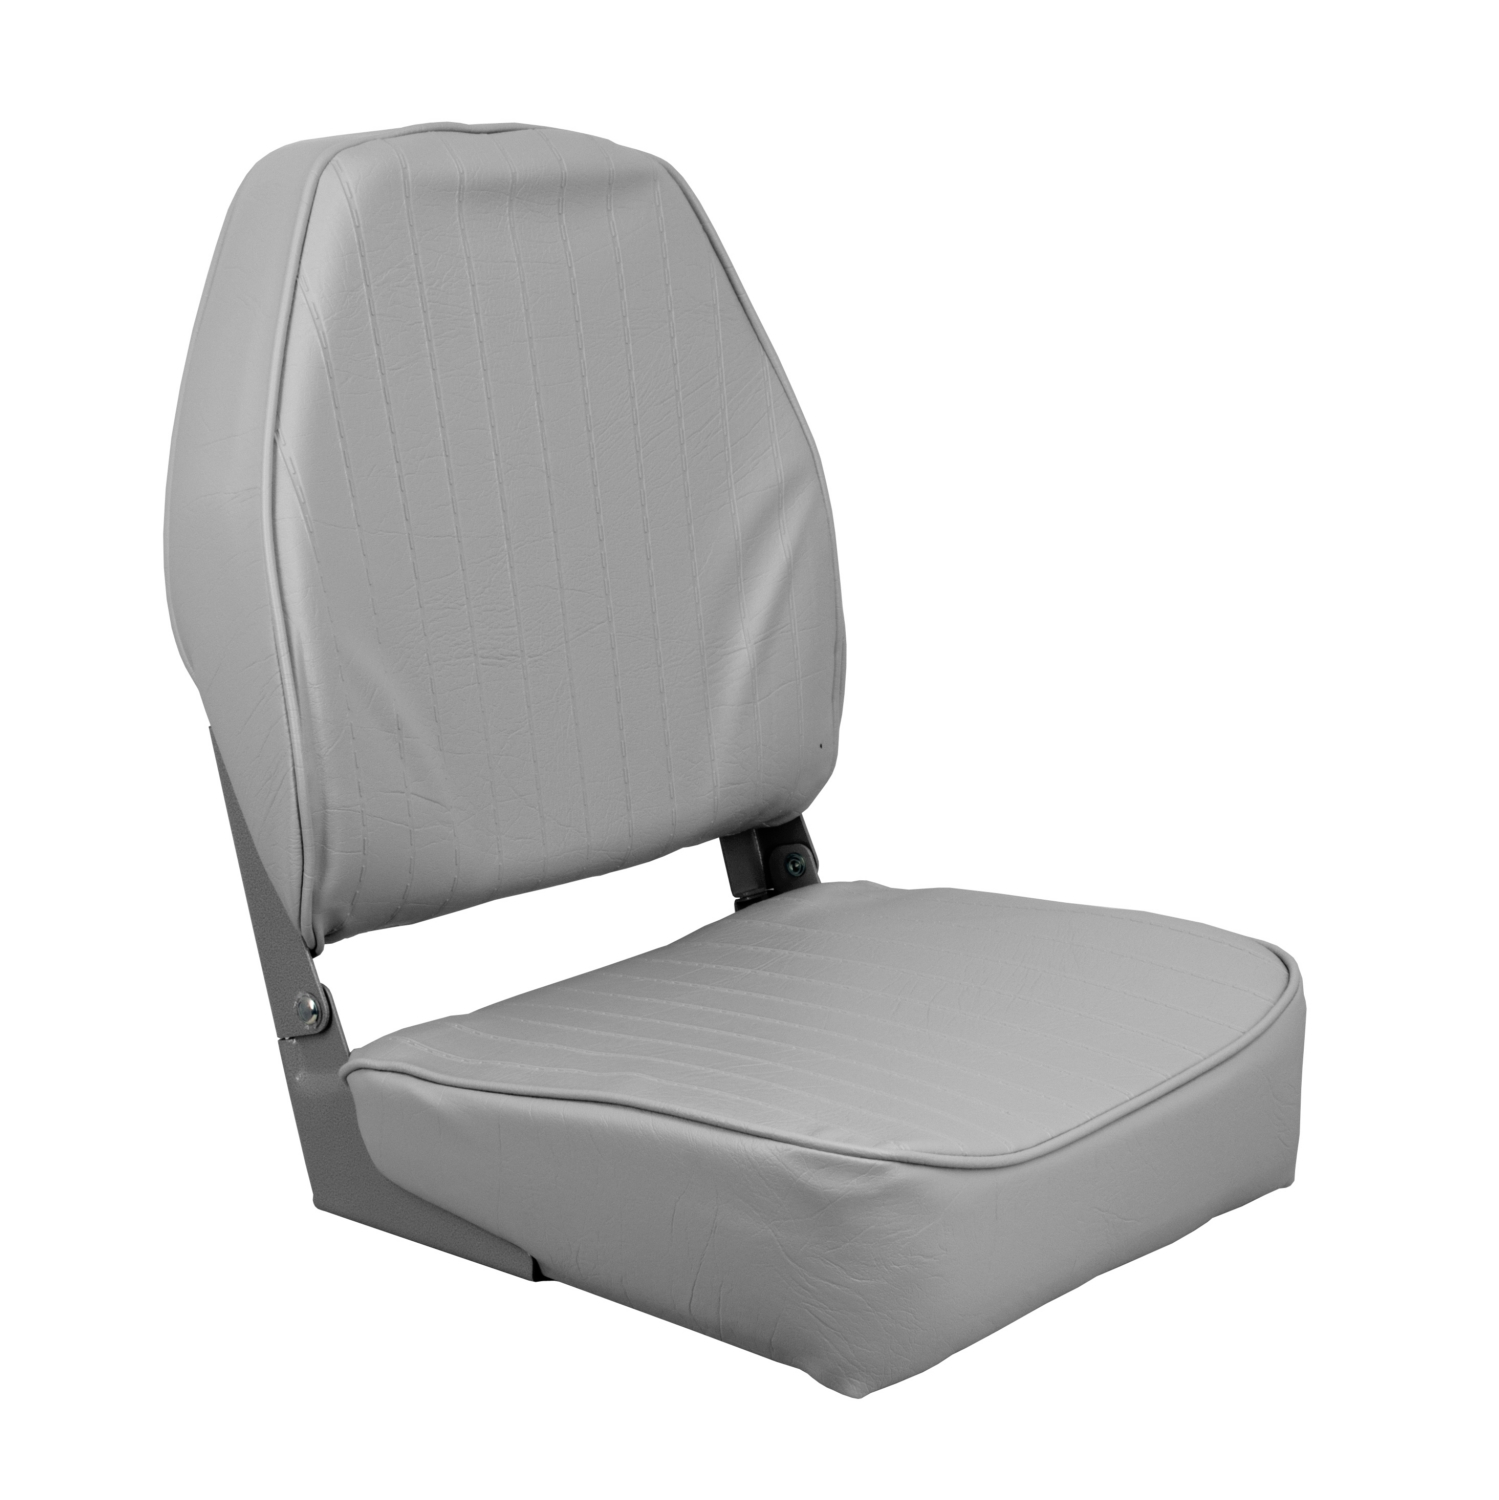 KIMPEX High Back Economy Seat | Kimpex Canada